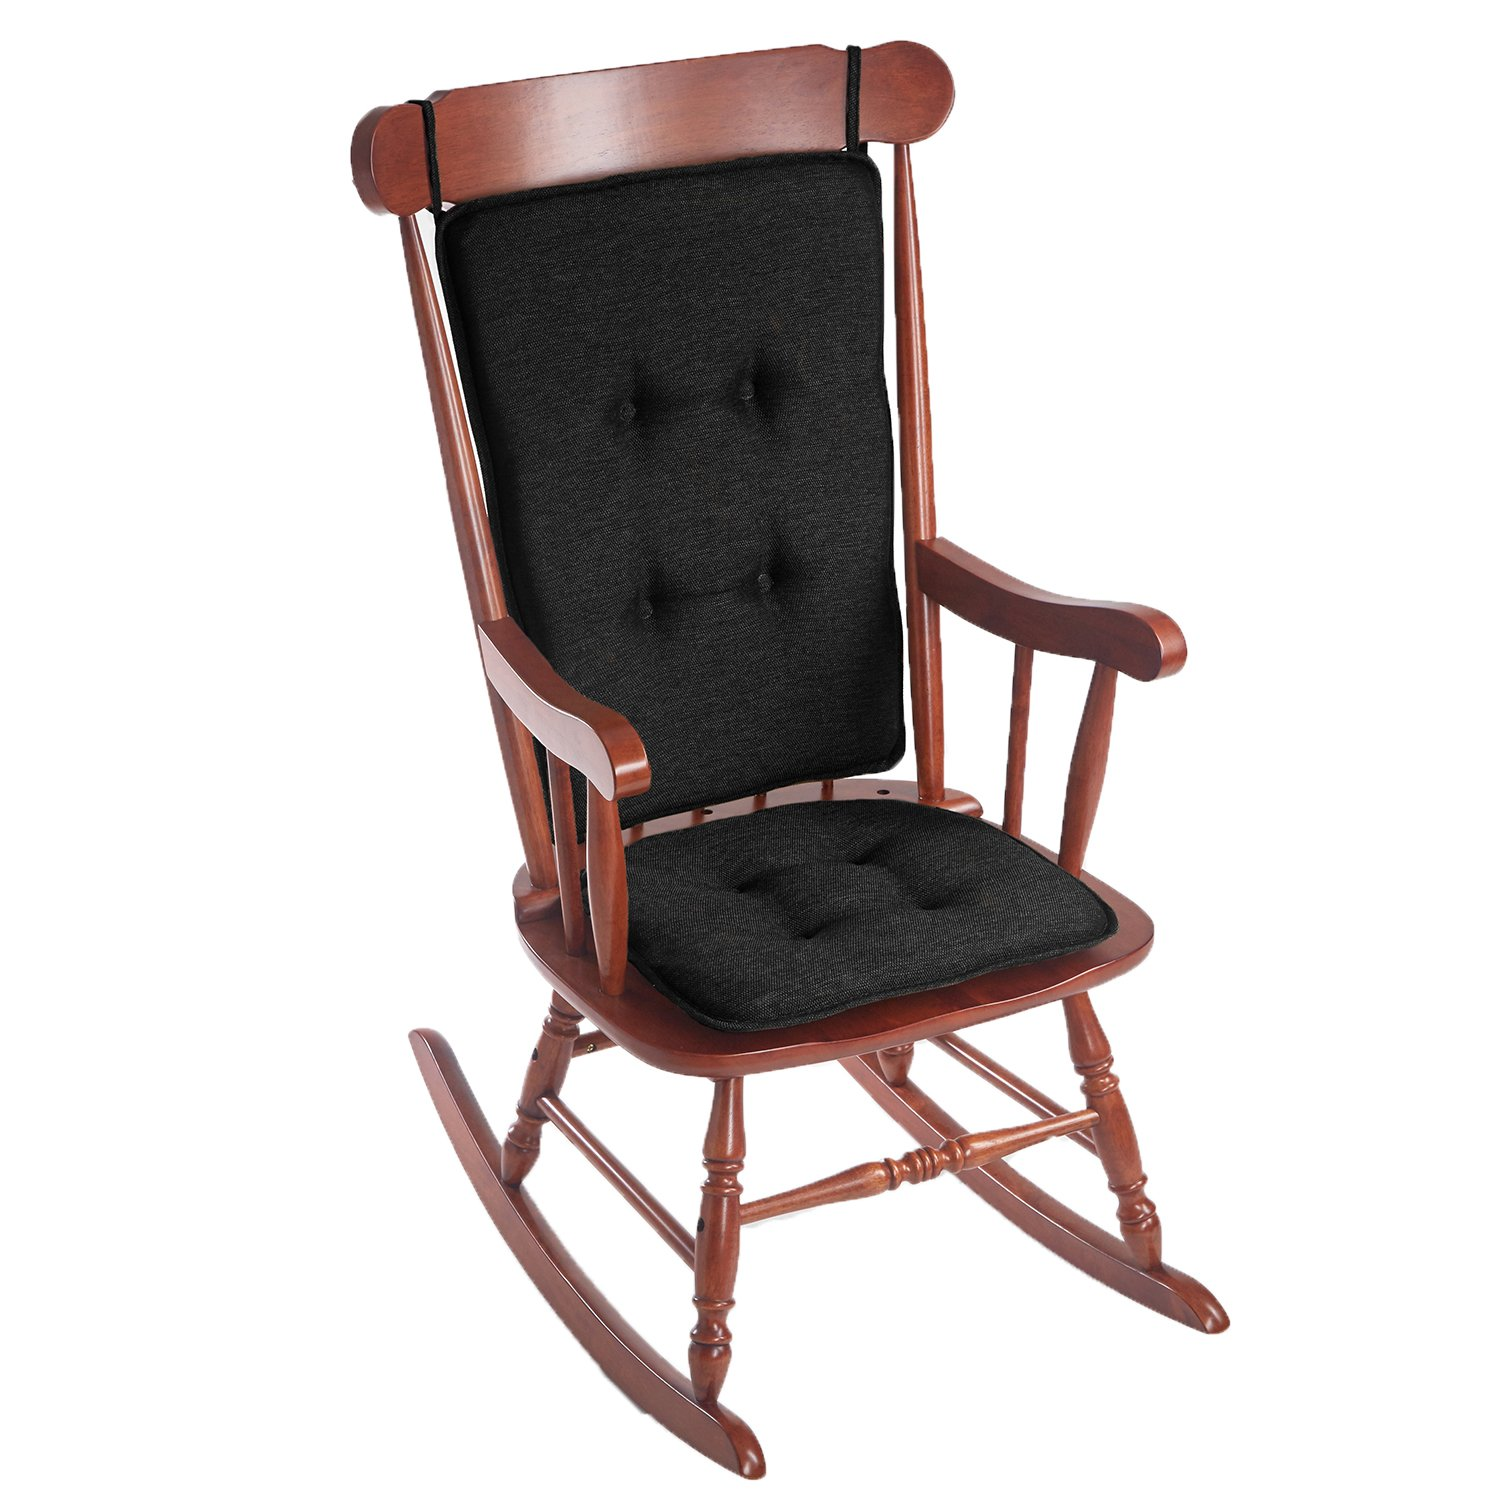 Lowes Rocking Chairs Cheap Black Rocking Chair Lowes Find Black Rocking Chair Lowes